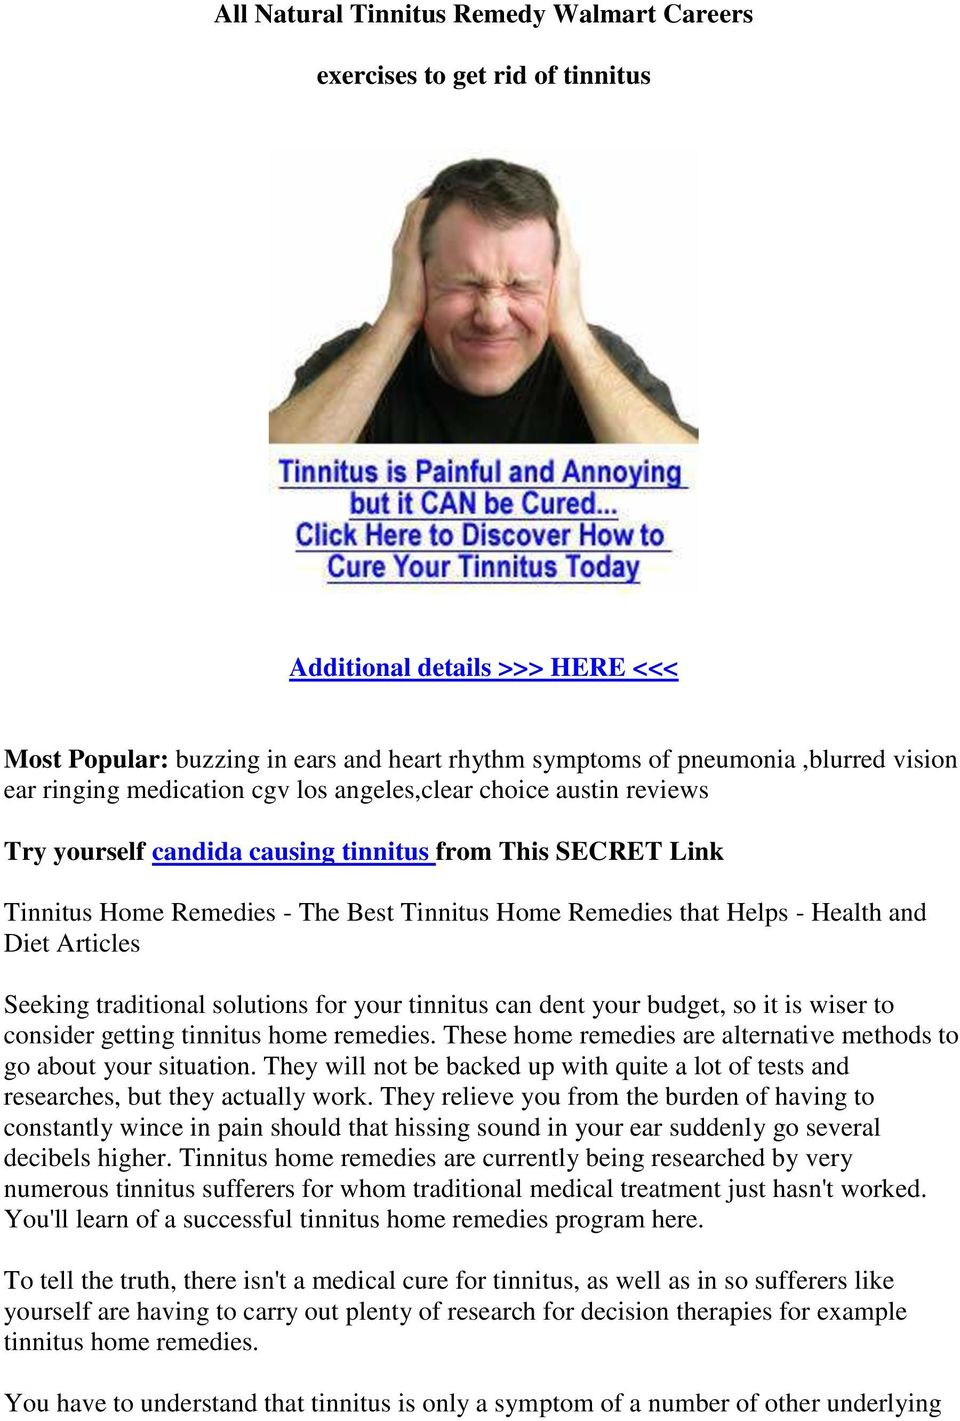 All Natural Tinnitus Remedy Walmart Careers  exercises to get rid of